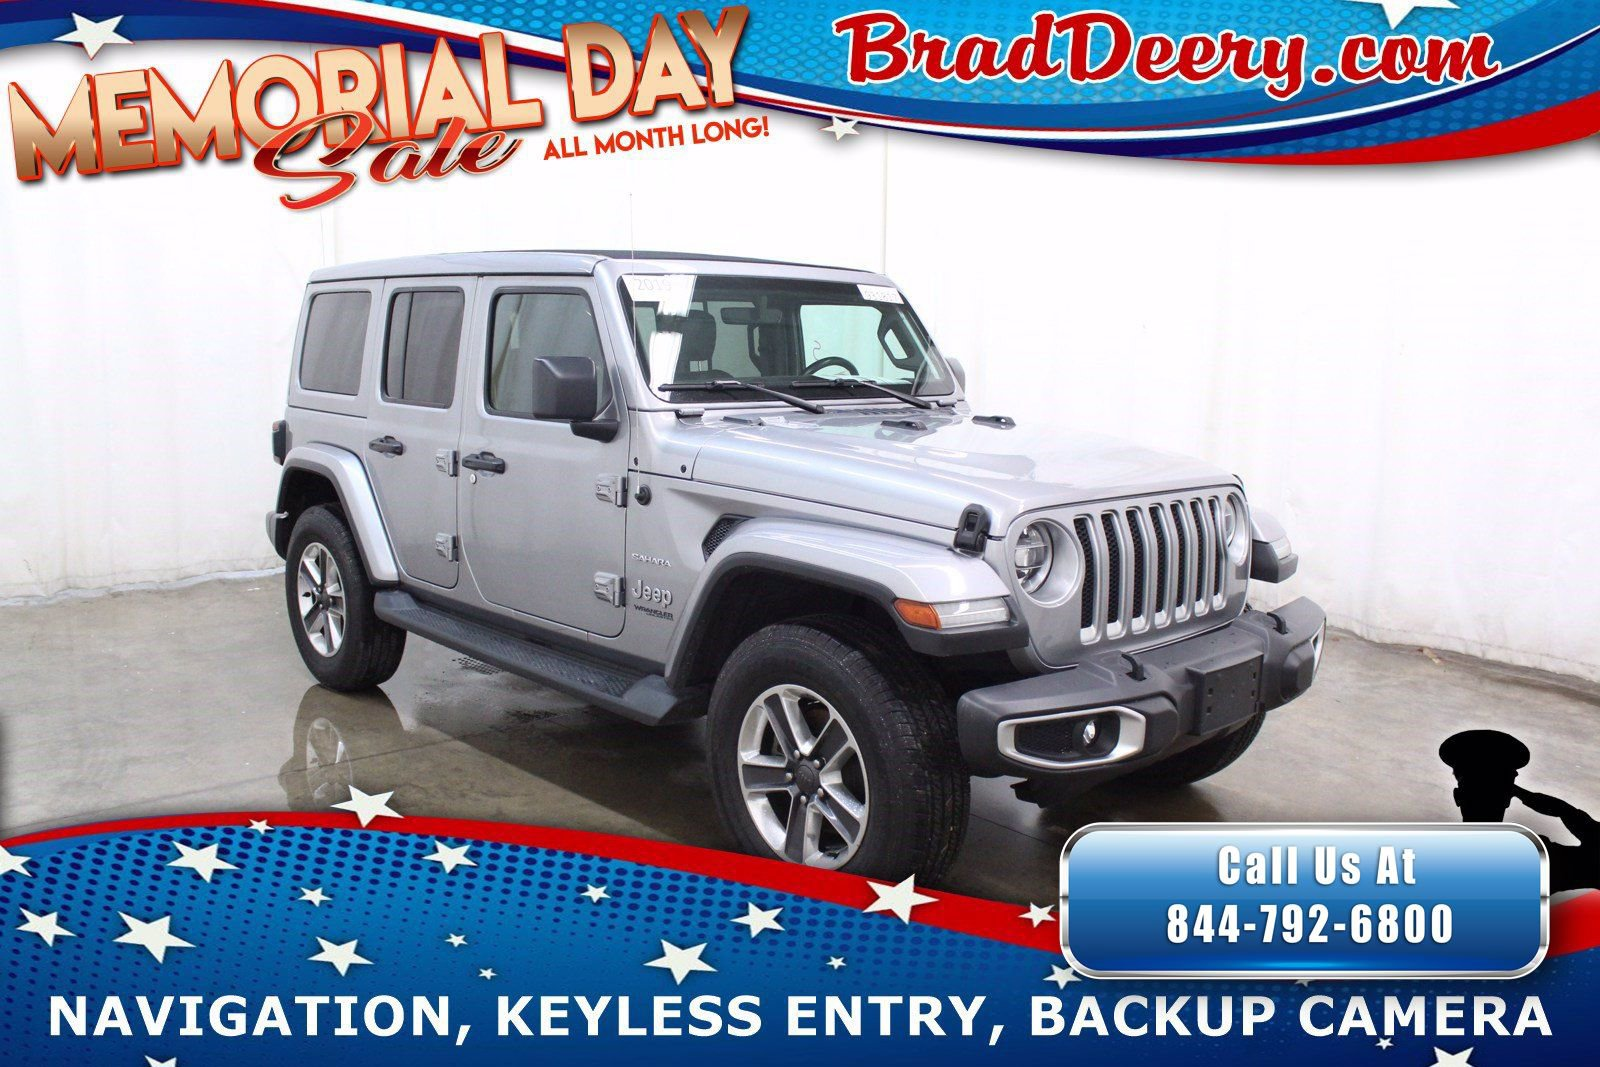 2019 Jeep Wrangler Unlimited 4-Door Sahara 4x4   **SKY ONE-TOUCH POWER TOP** w/ Navigation, Leather, Back-Up Cam & Trailer Tow Group